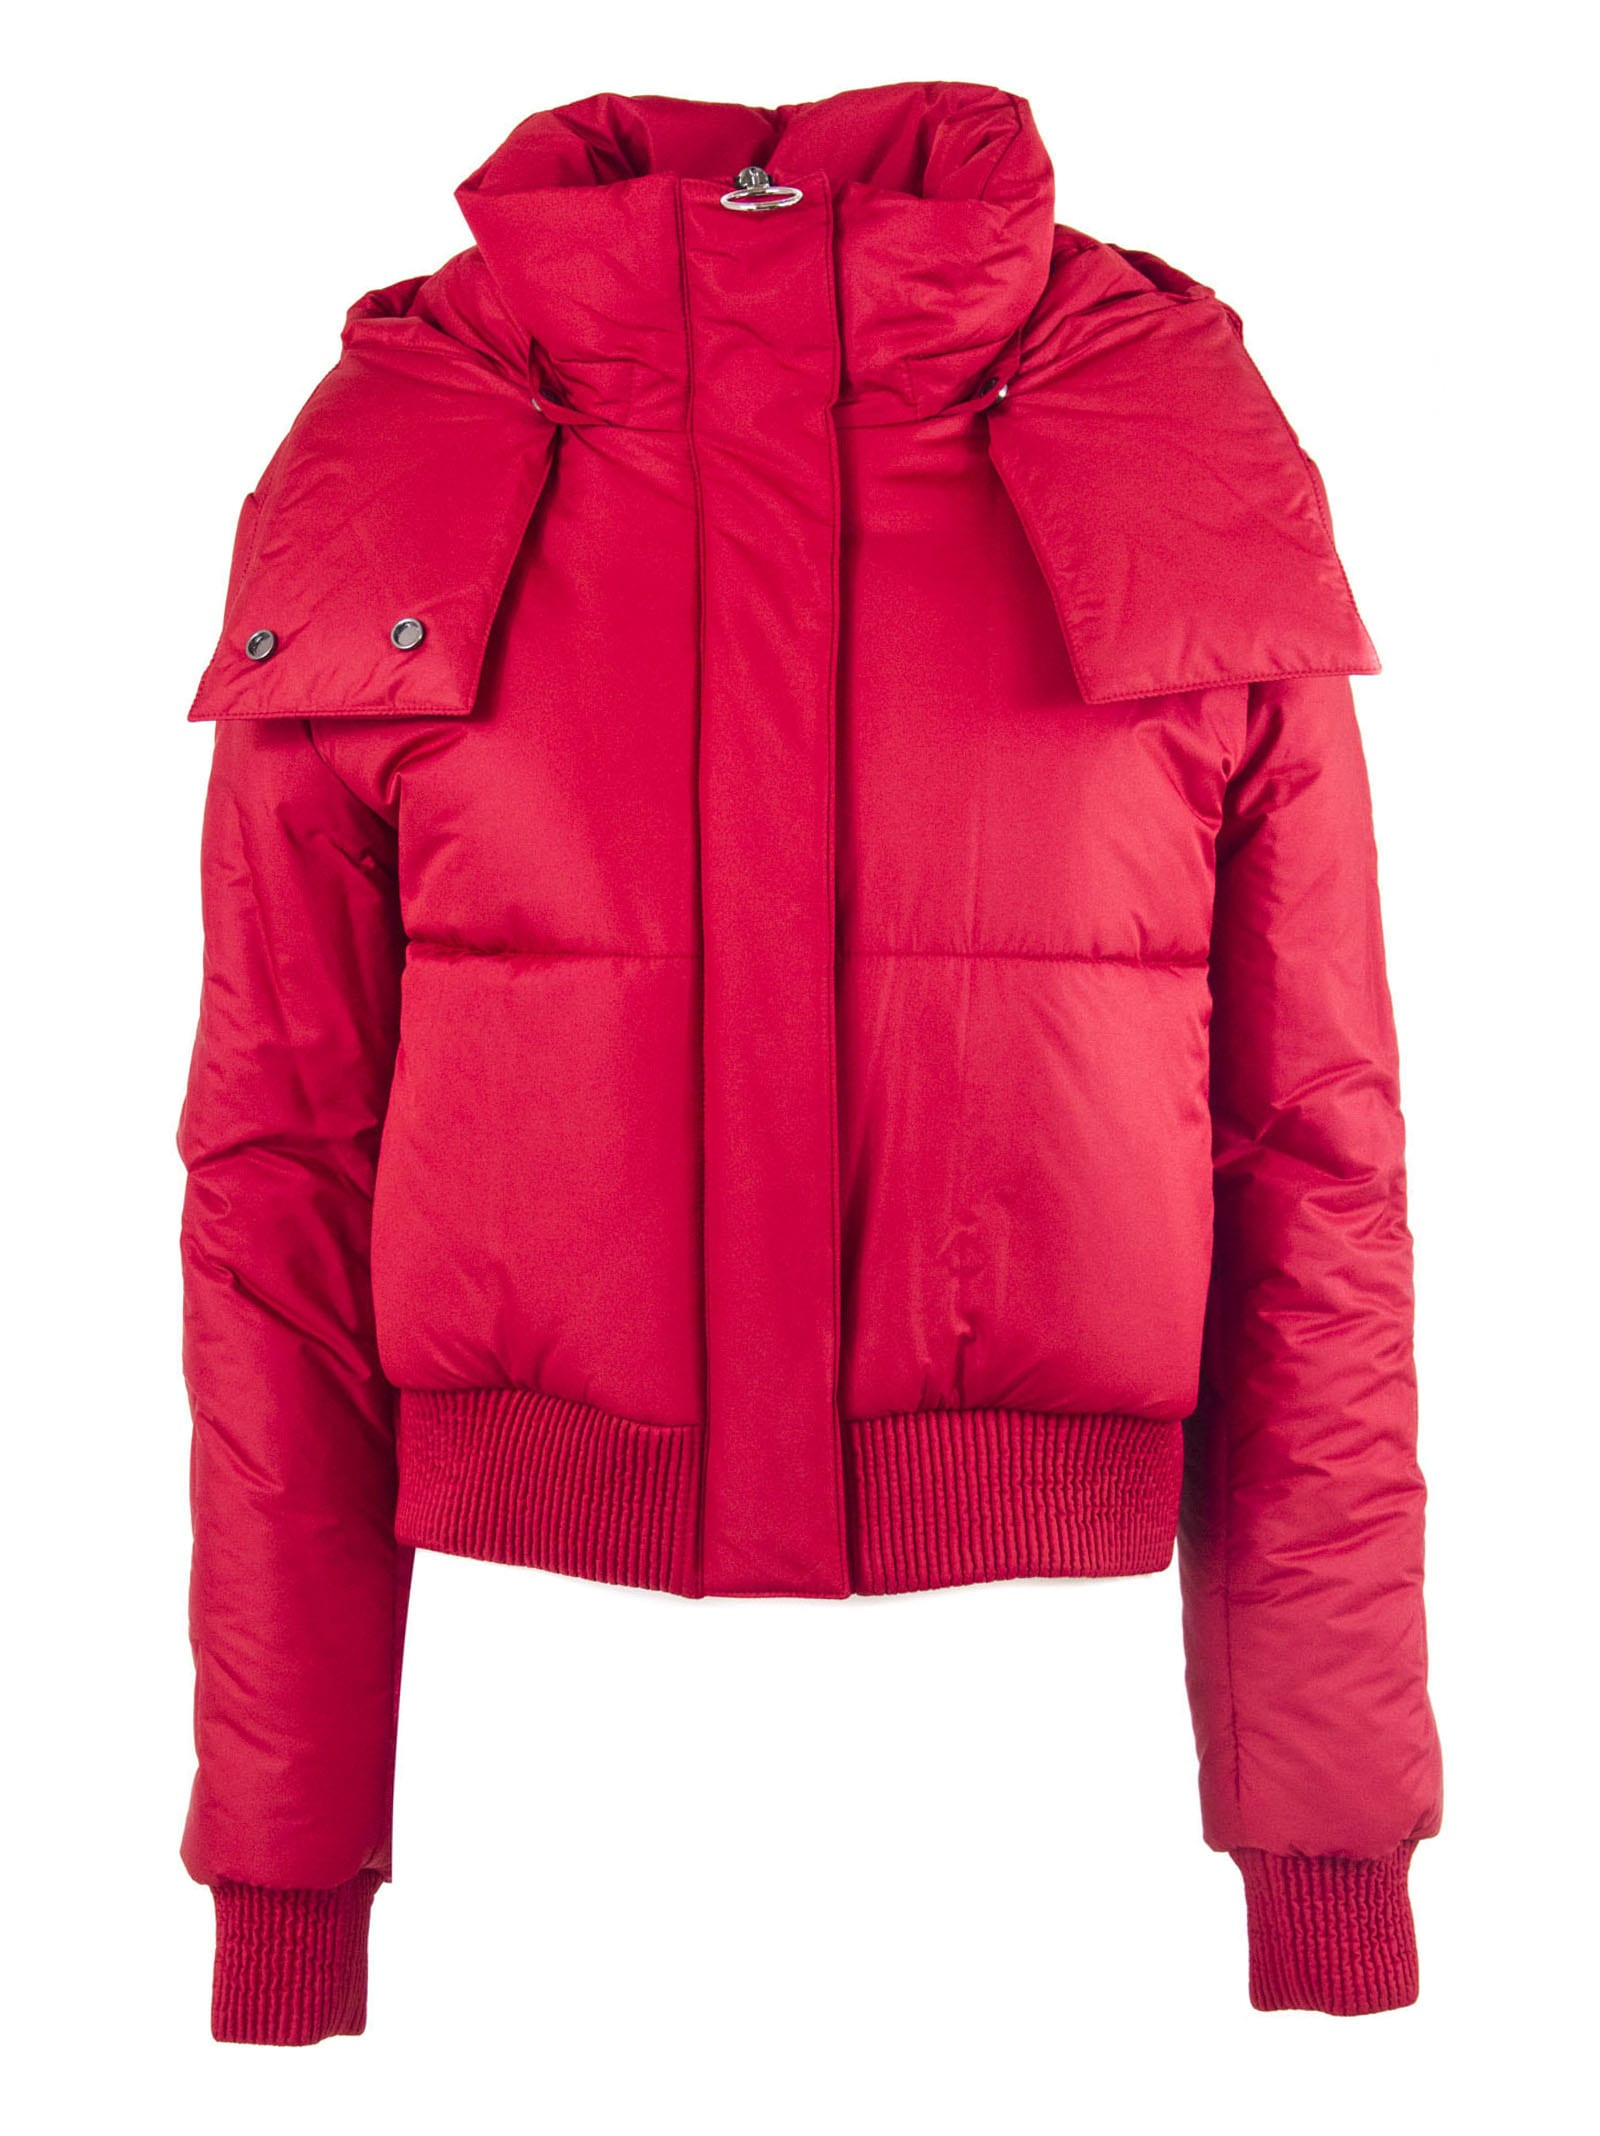 Off-White Red Hooded Down Jacket